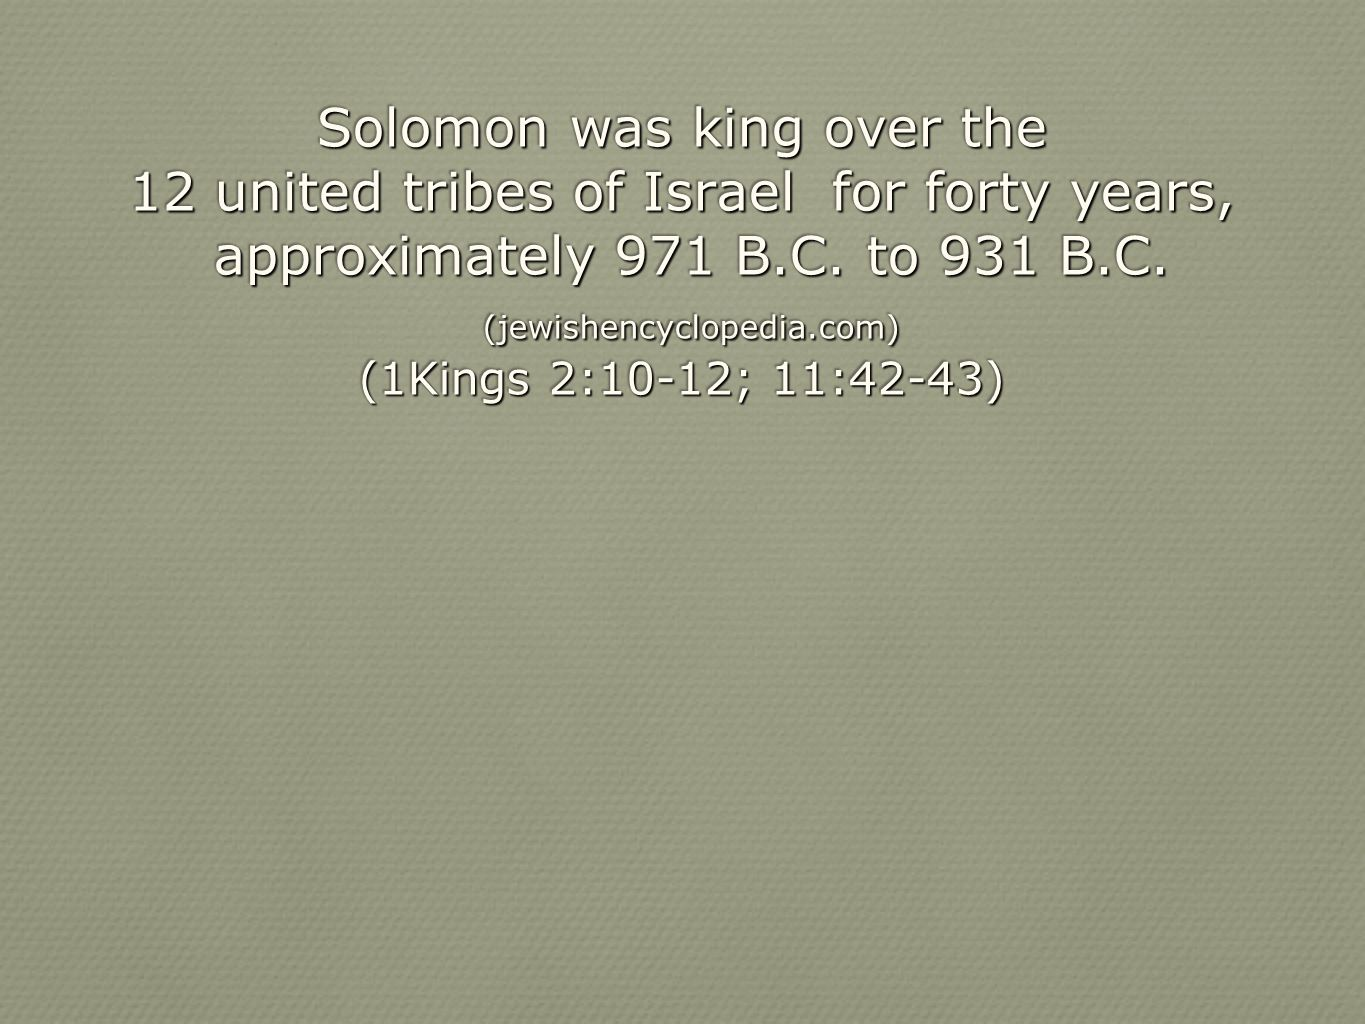 Solomon was king over the 12 united tribes of Israel for forty years, approximately 971 B.C. to 931 B.C. approximately 971 B.C. to 931 B.C. (jewishenc